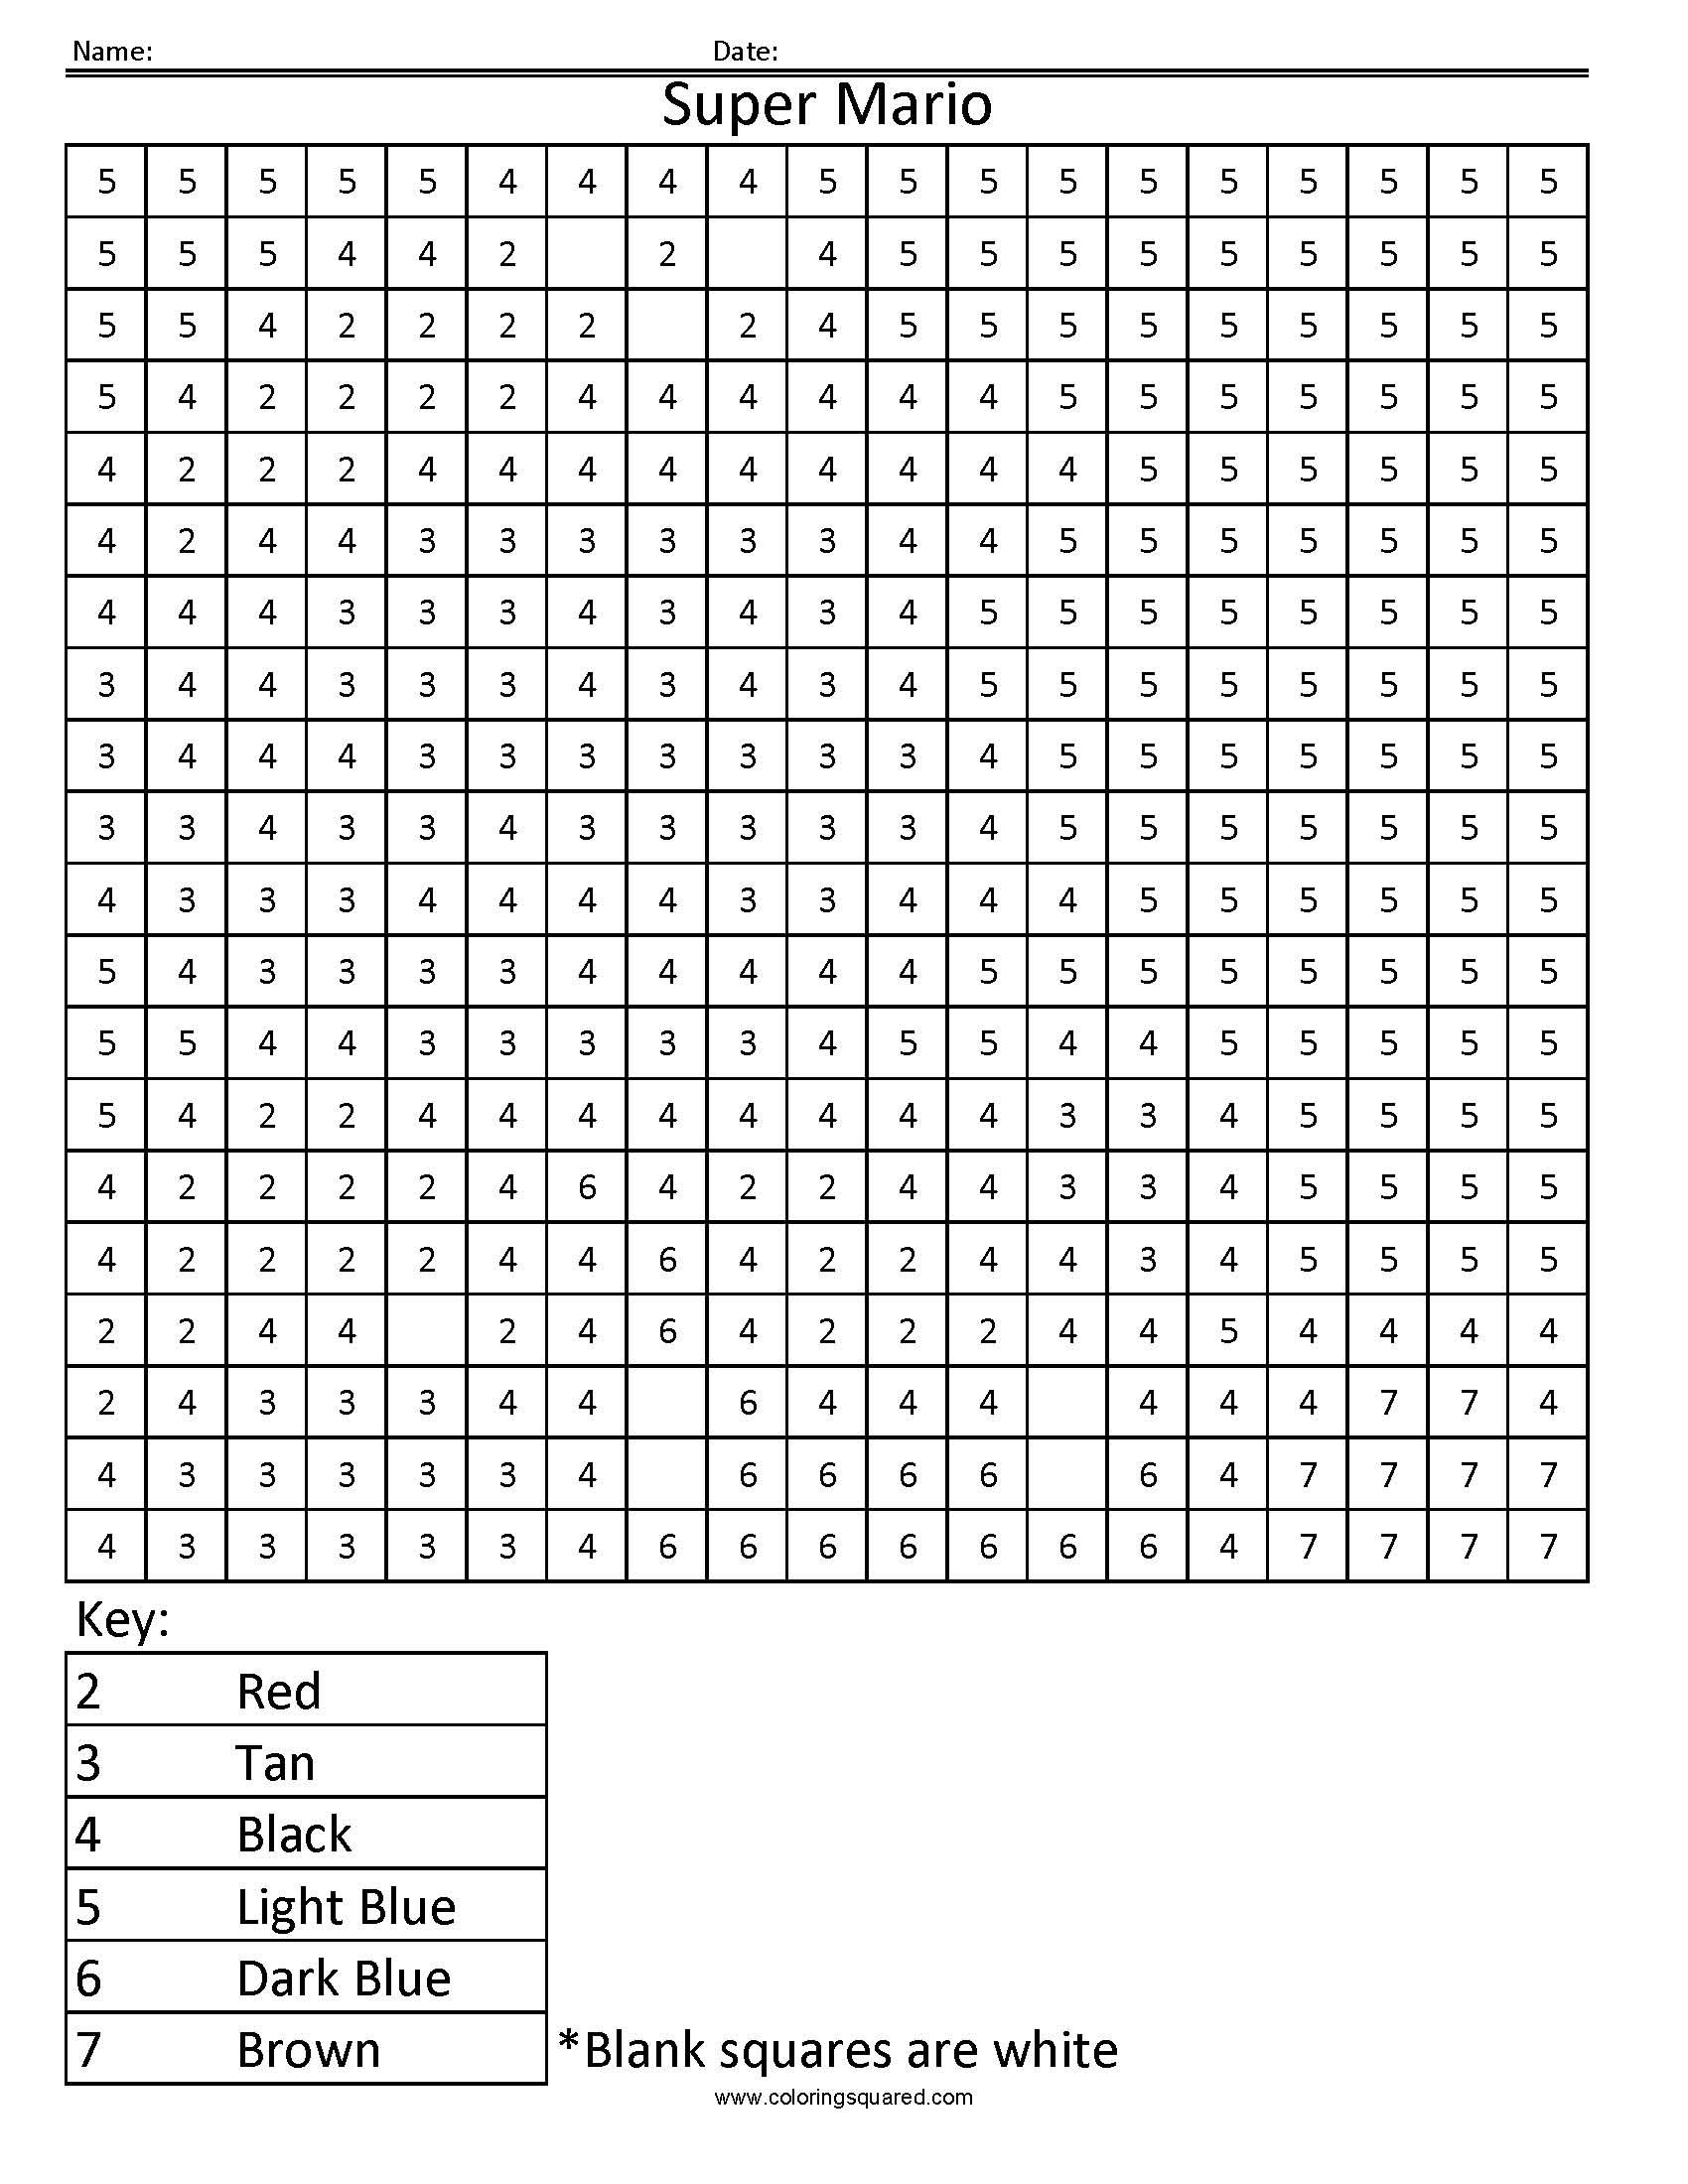 Colouring In Square Sheets For Year Three No Color | Template with Colouring In Square Sheets For Year Three No Color